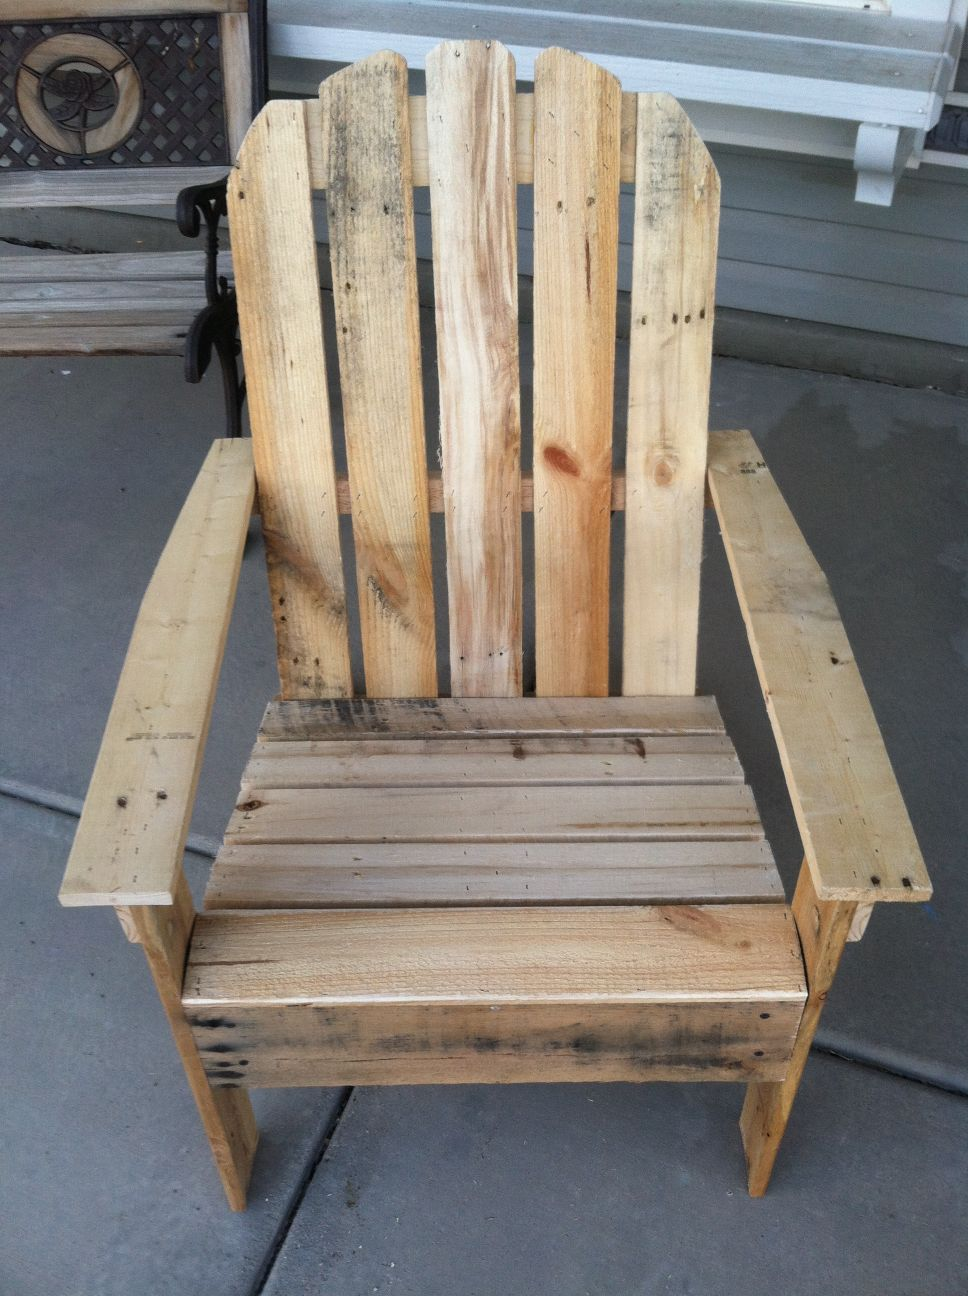 Pallet Bookshelf And Pallet Outdoor ChairDIY Pallet